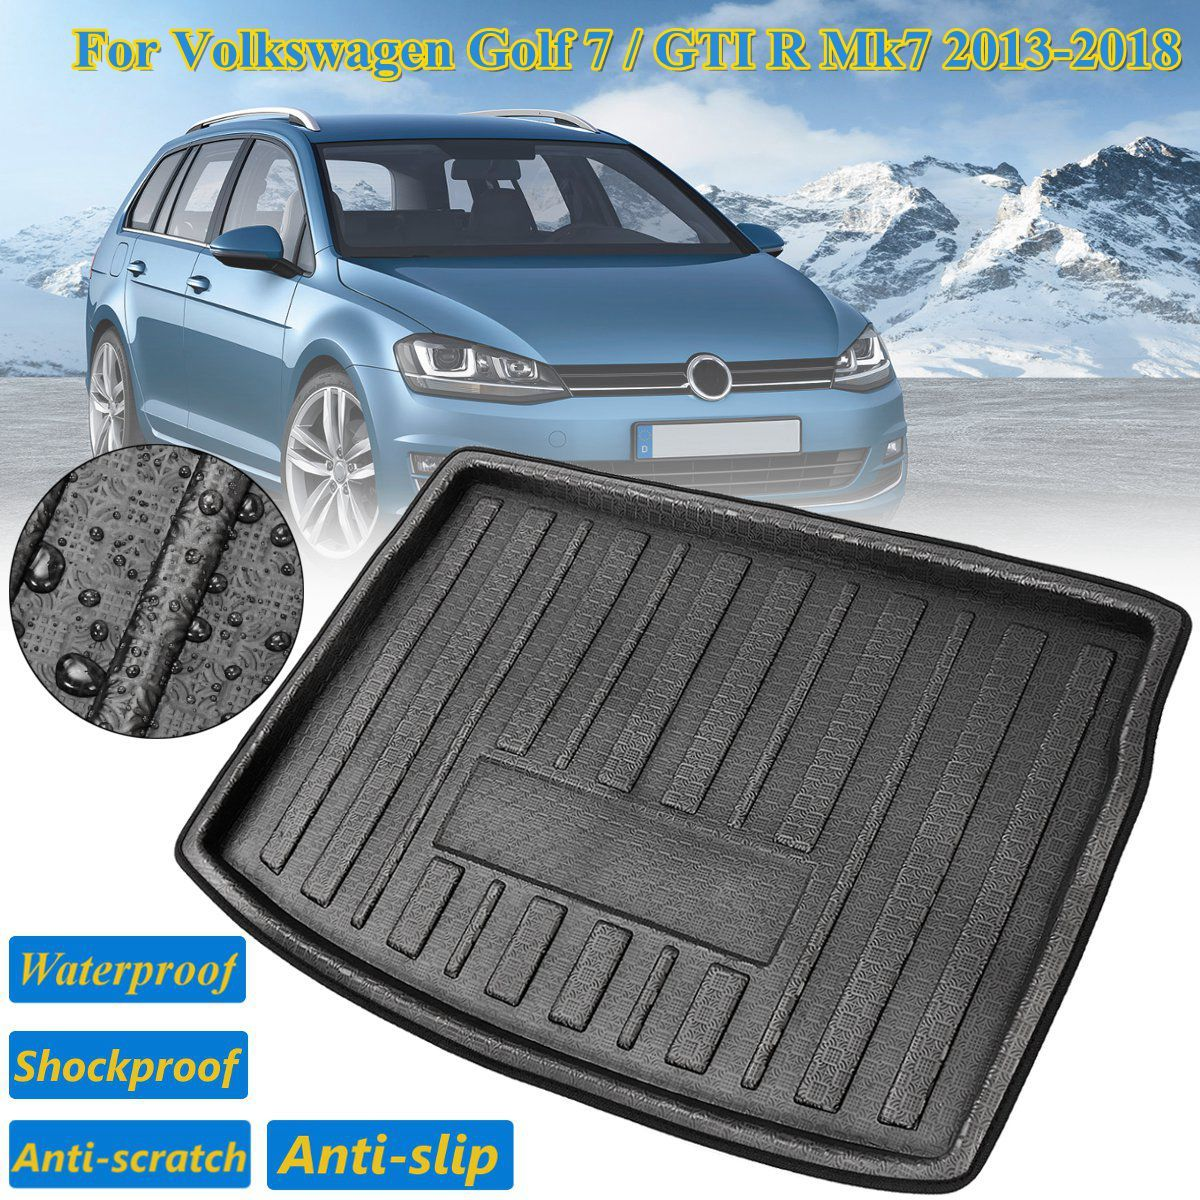 For Volkswagen for VW Golf 7 GTI R Mk7 2013-2018 Car Rear Trunk Liner Boot Cargo Mat Tray Boot Floor Carpet Hatchback Hatch